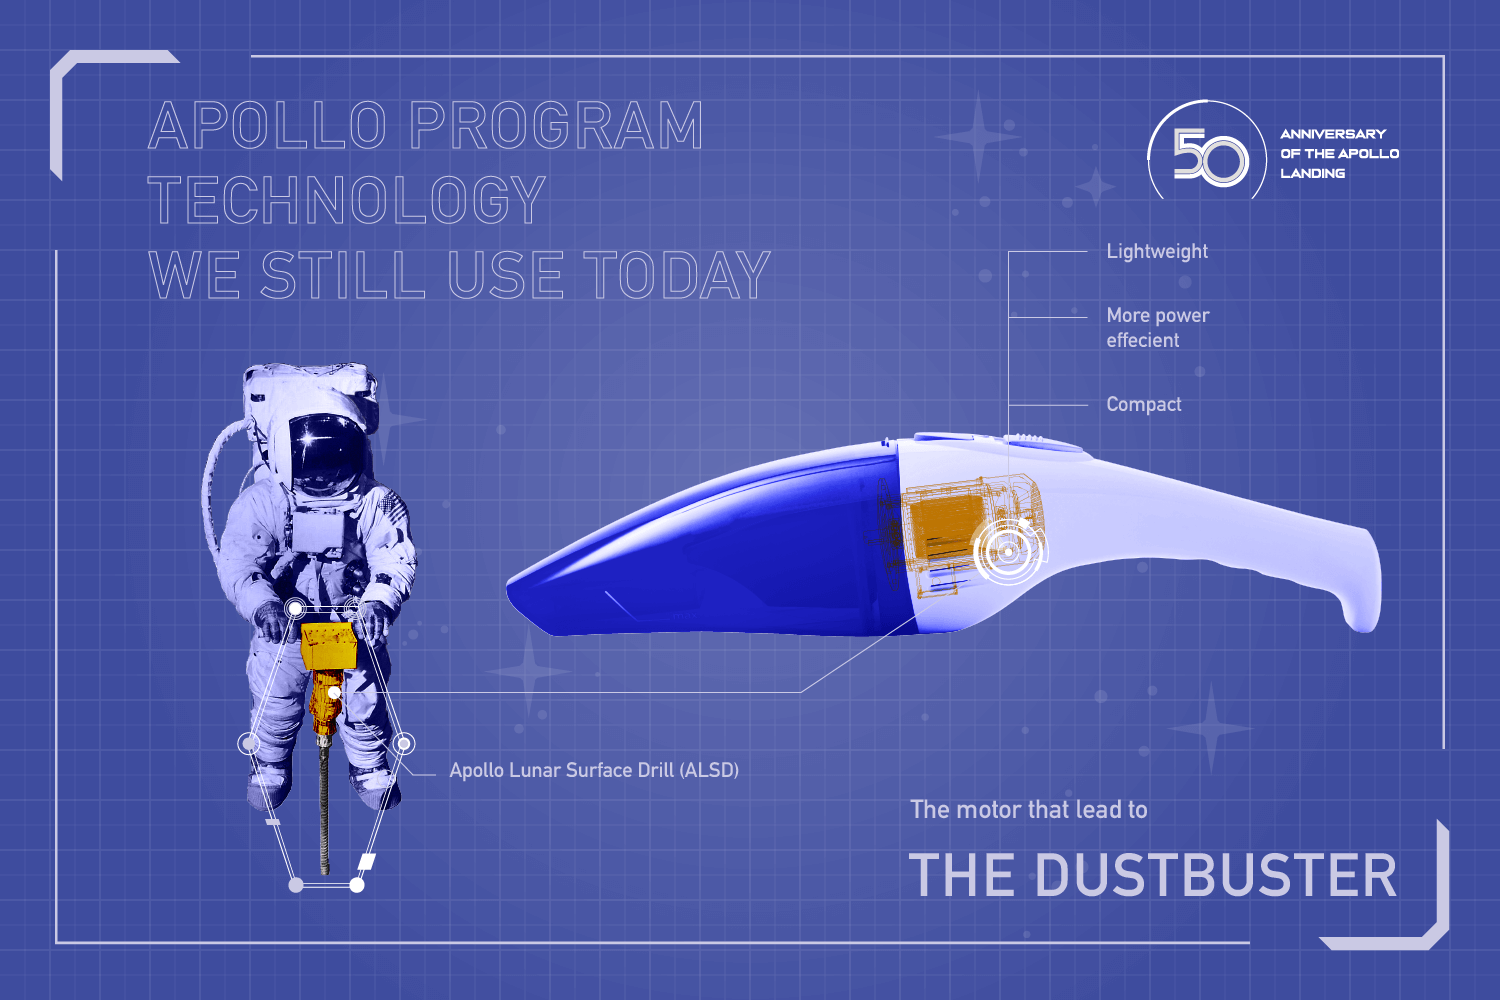 Apollo technology motor that lead to the Dustbuster